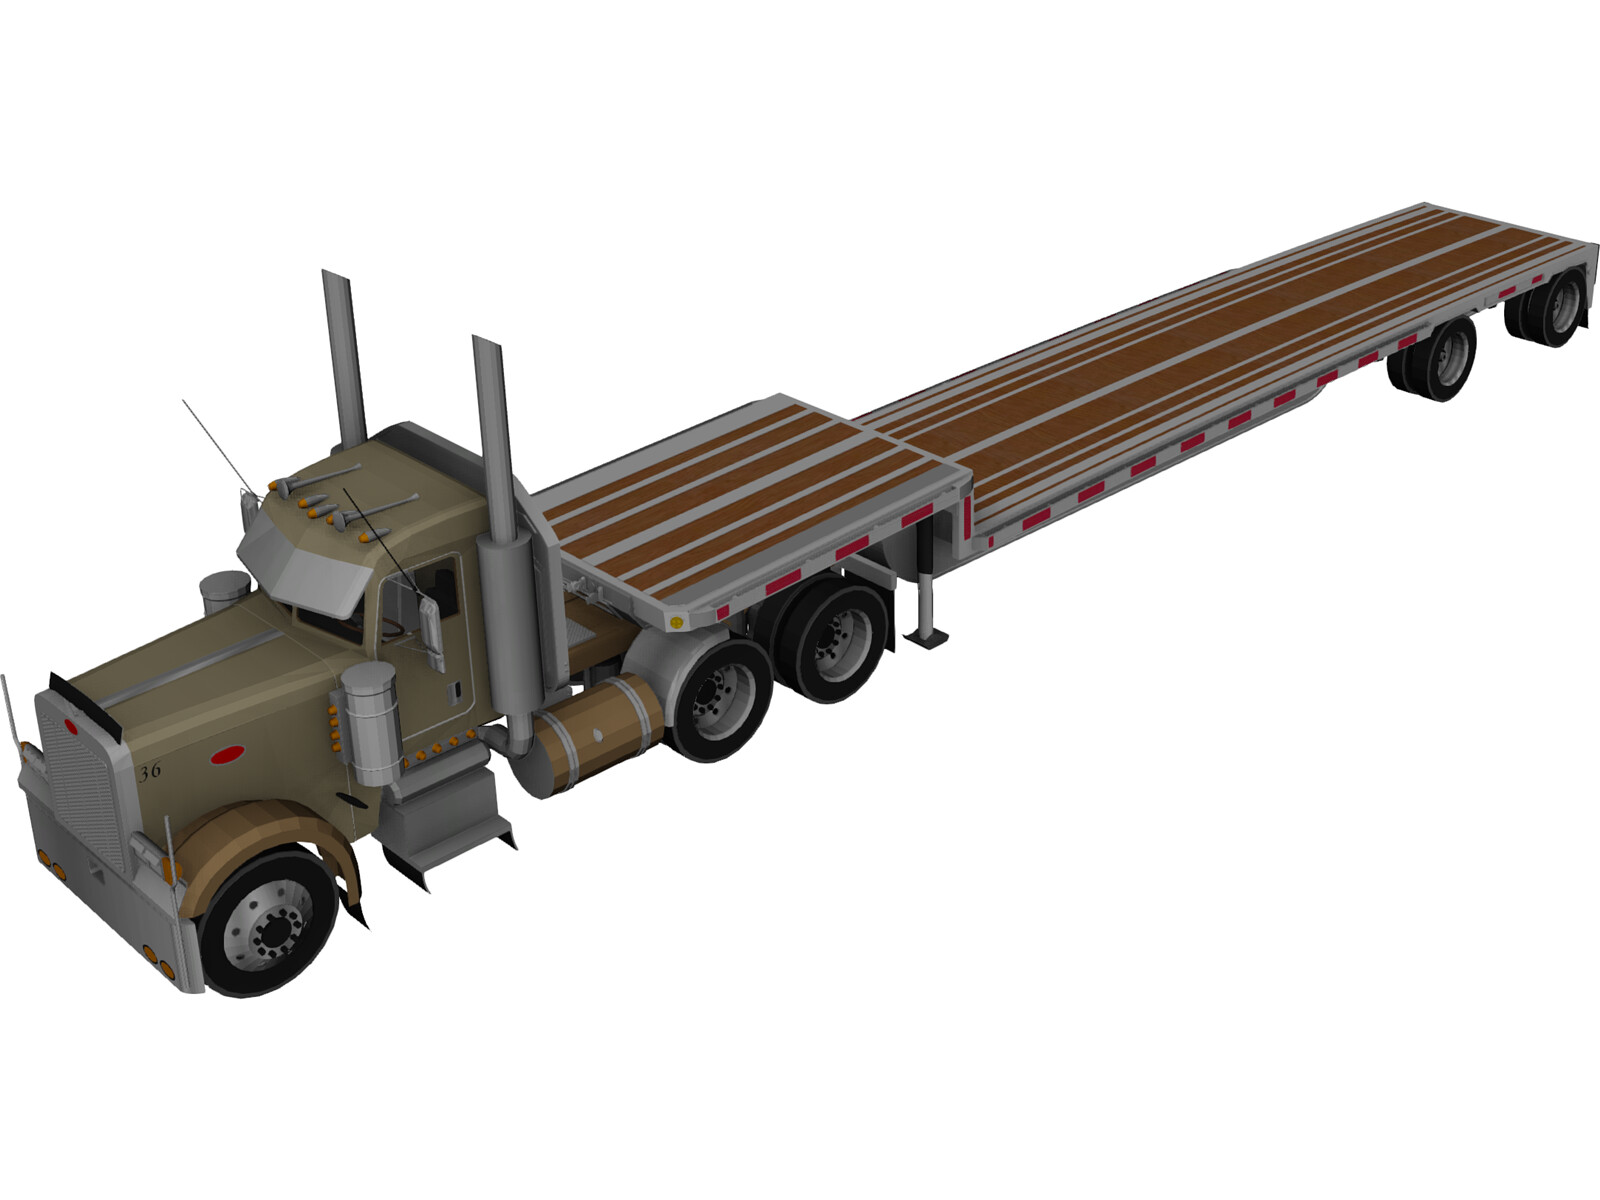 Peterbilt with Reitnouer Trailer